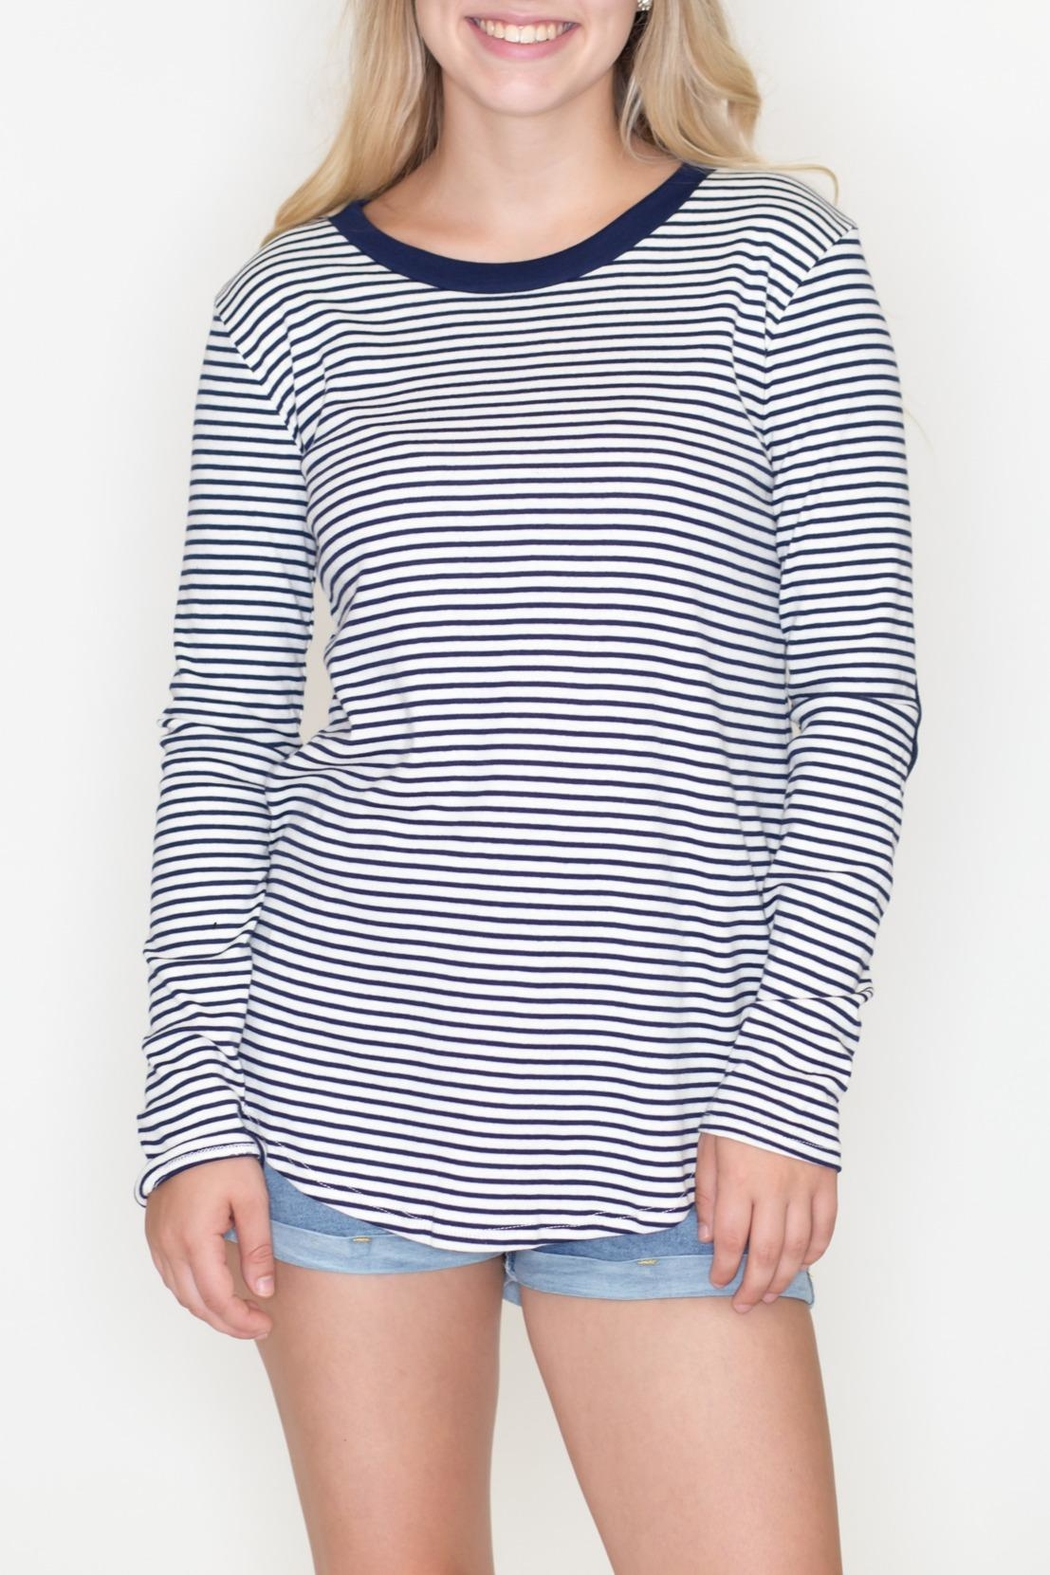 Cherish Striped Patch Top - Main Image